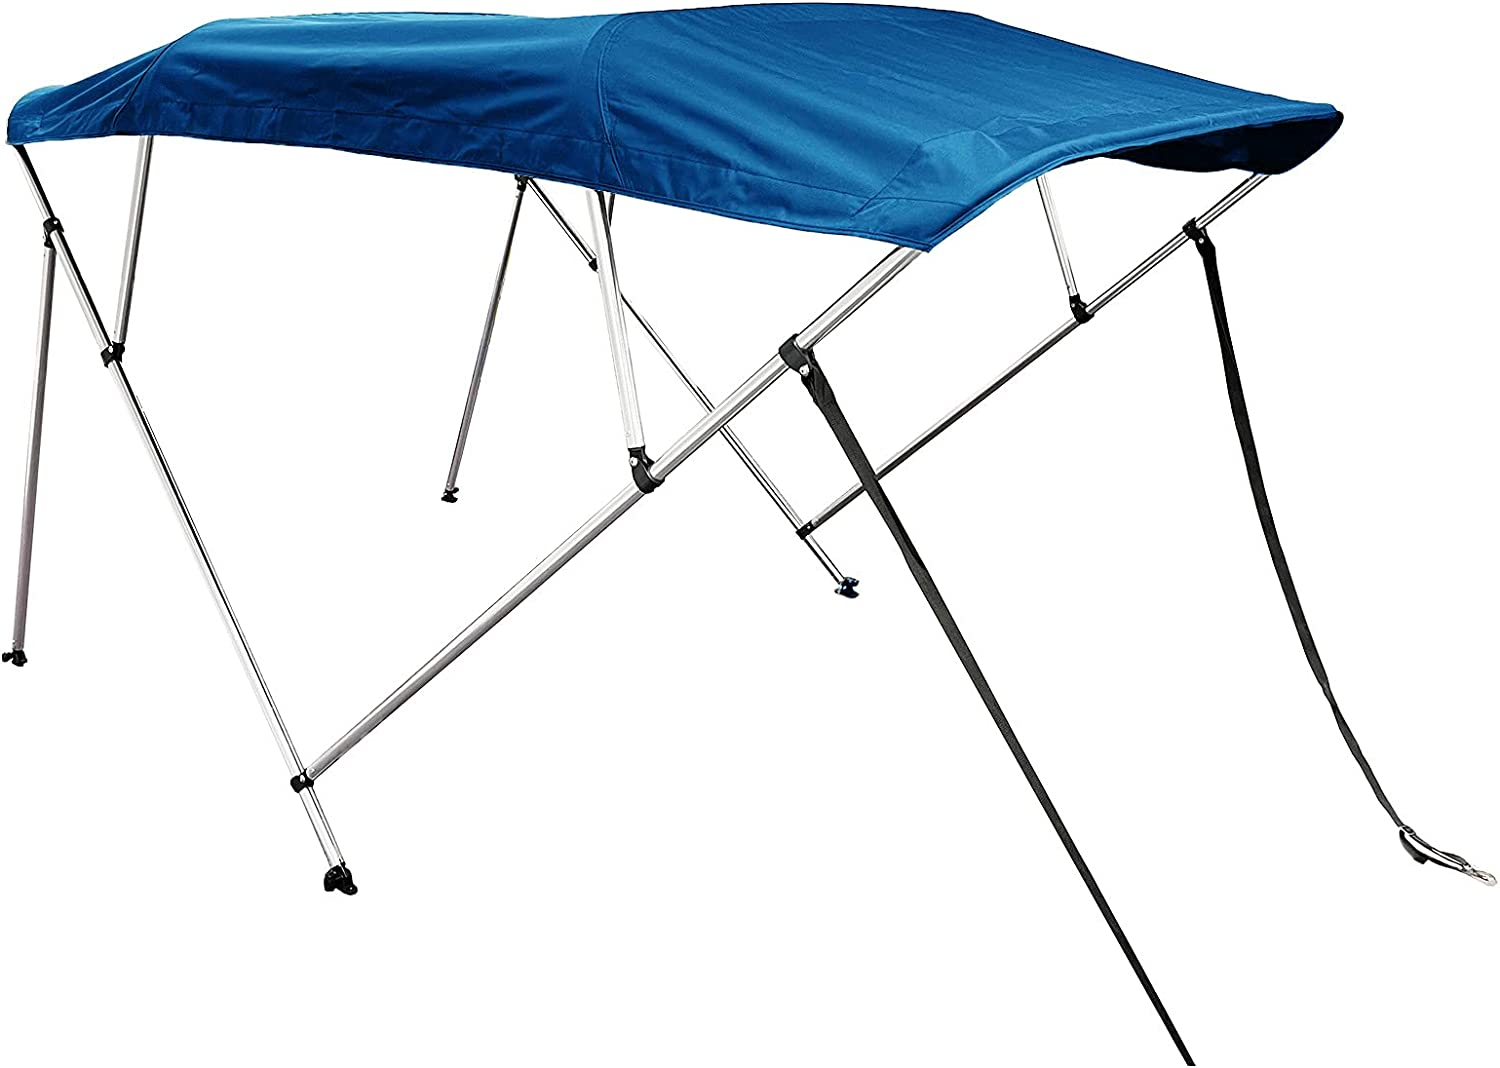 Savvycraft Dealing full price reduction 4 Bow Bimini Top Boat Inch Frame New life Aluminum wit Cover 1